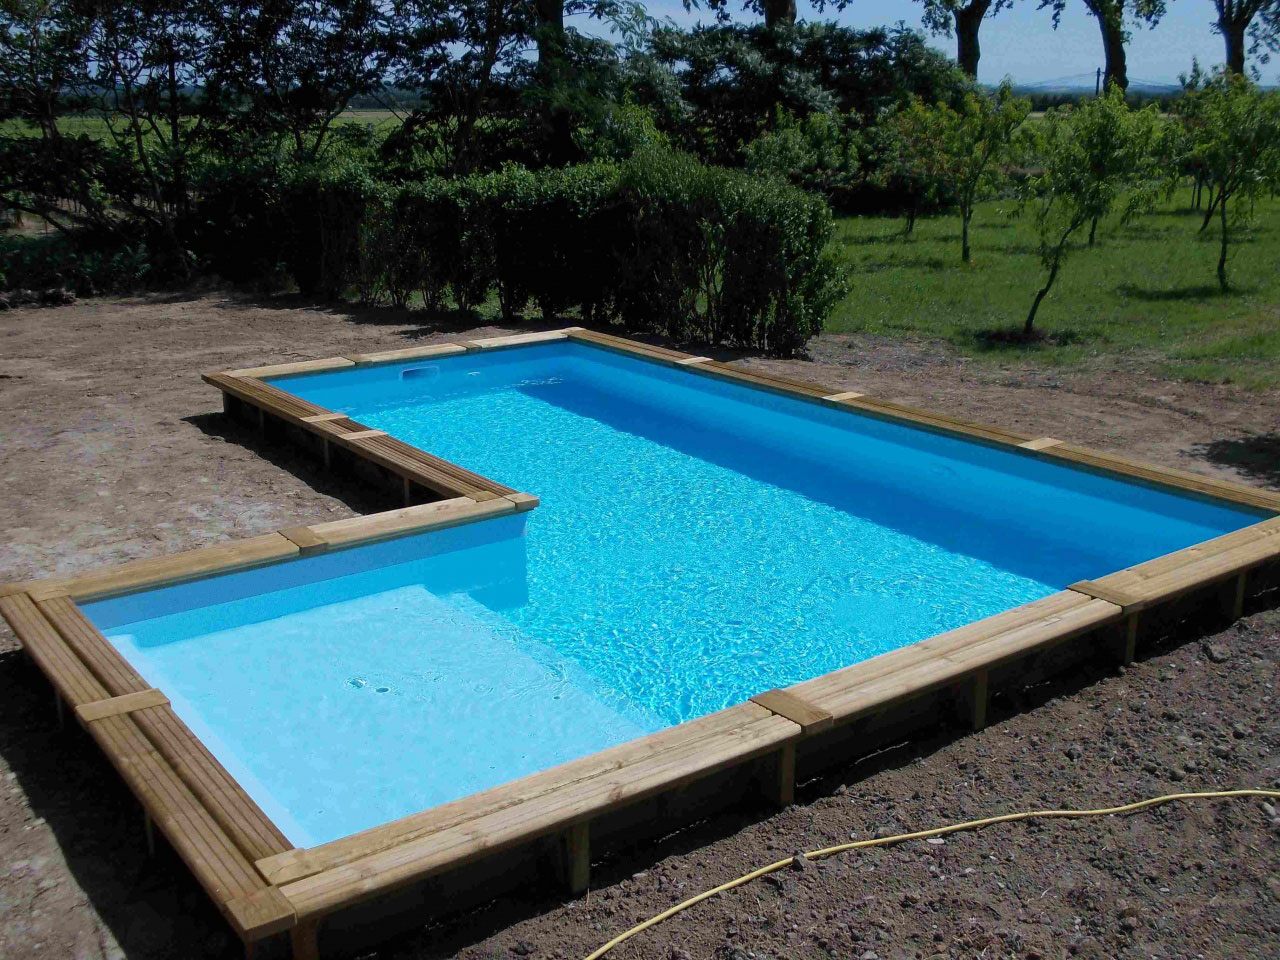 Piscine en bois promo finest piscine bois with piscine en for Promo piscine bois